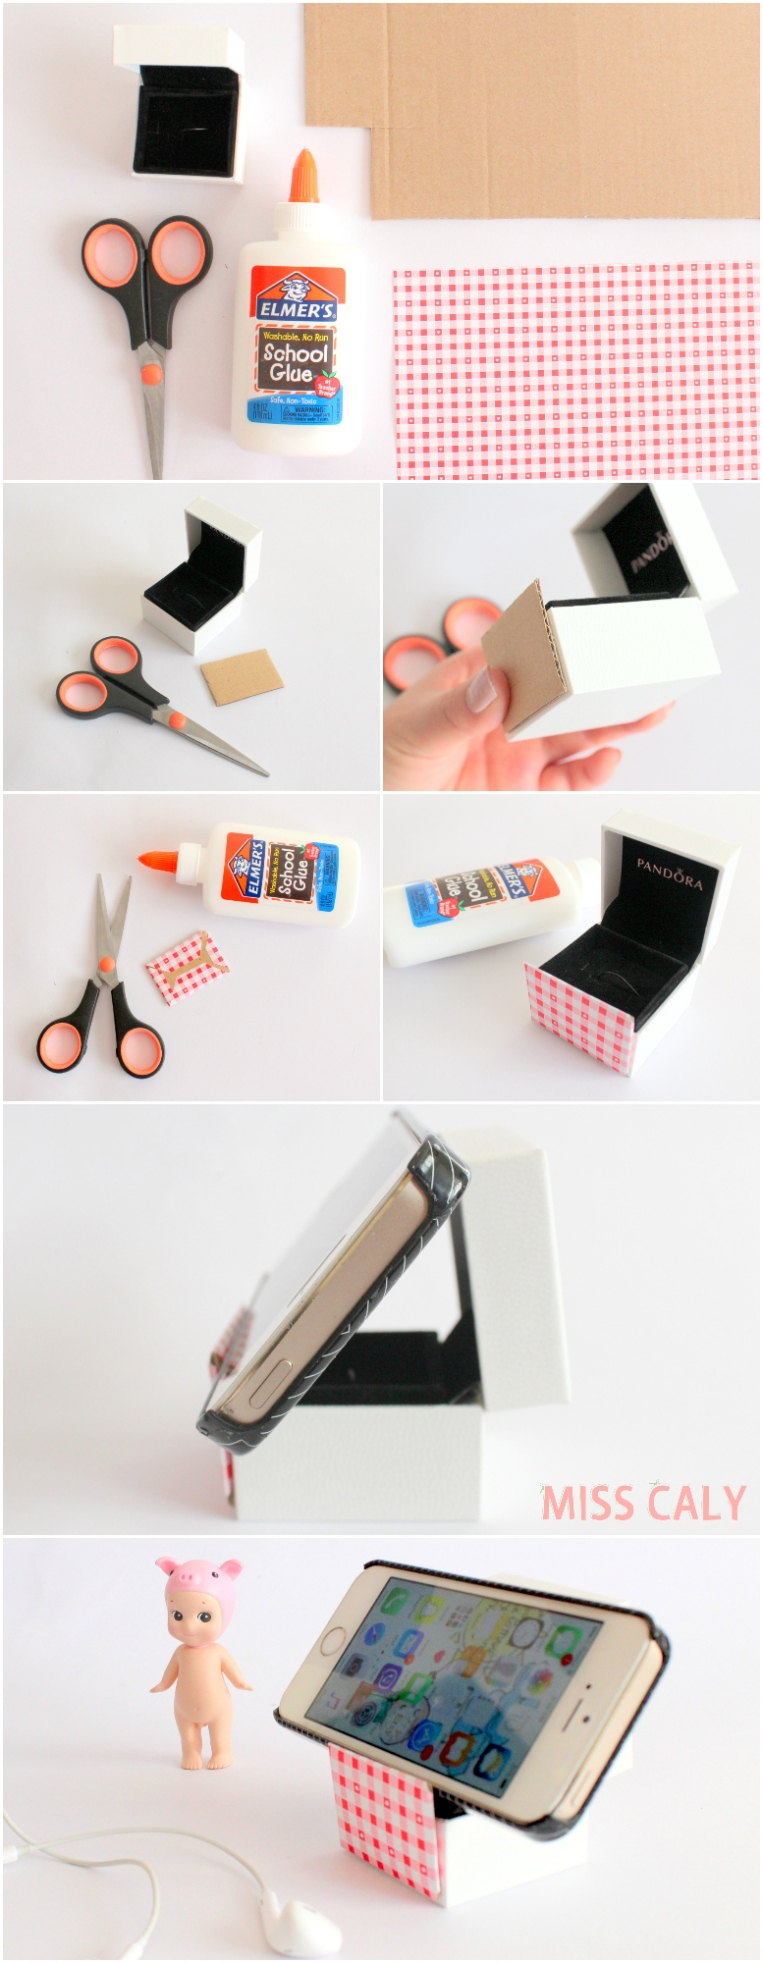 Life hack! How to make a DIY phone stand in under 5 minutes using a ring box - Miss Caly